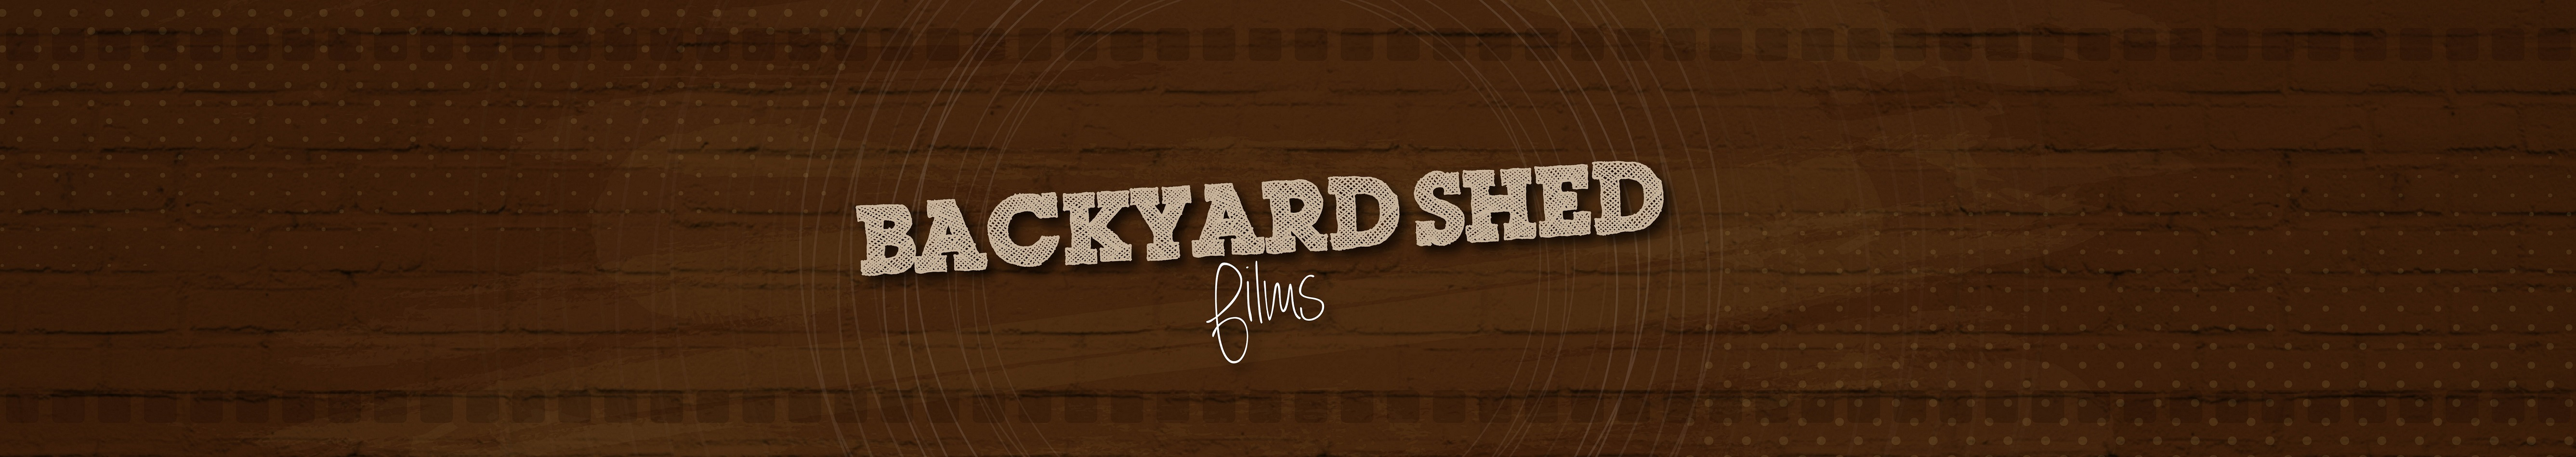 Home Page Carousel Header | Backyard Shed Films